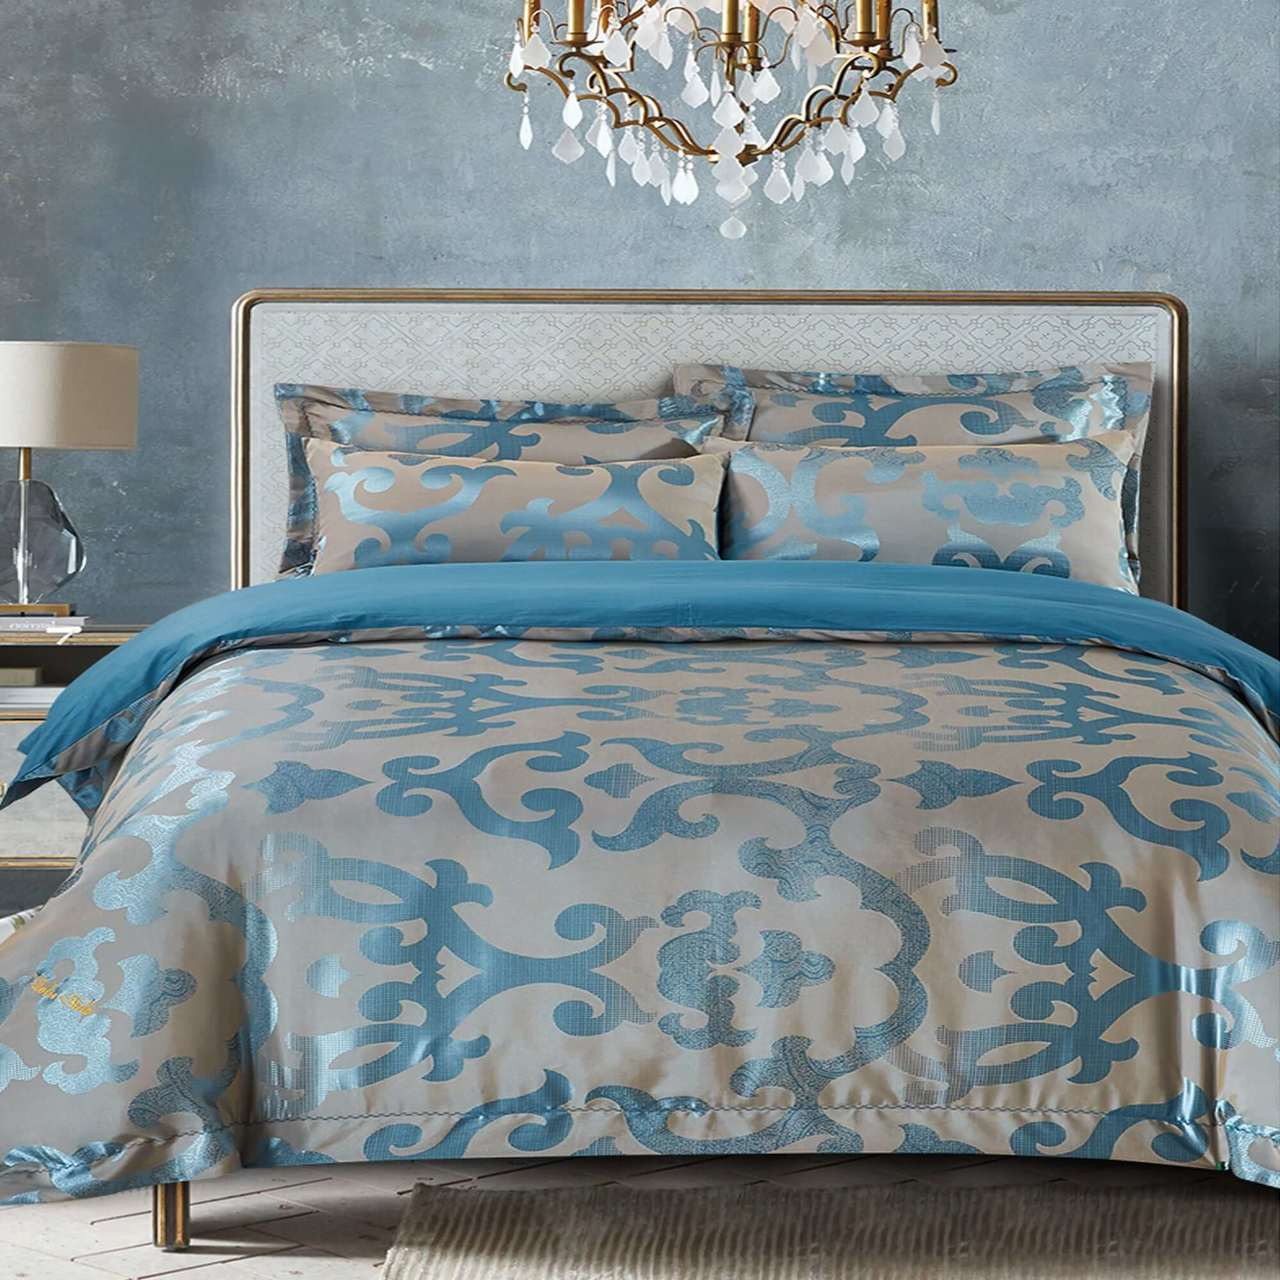 DM513Q Dolce Mela Bedding